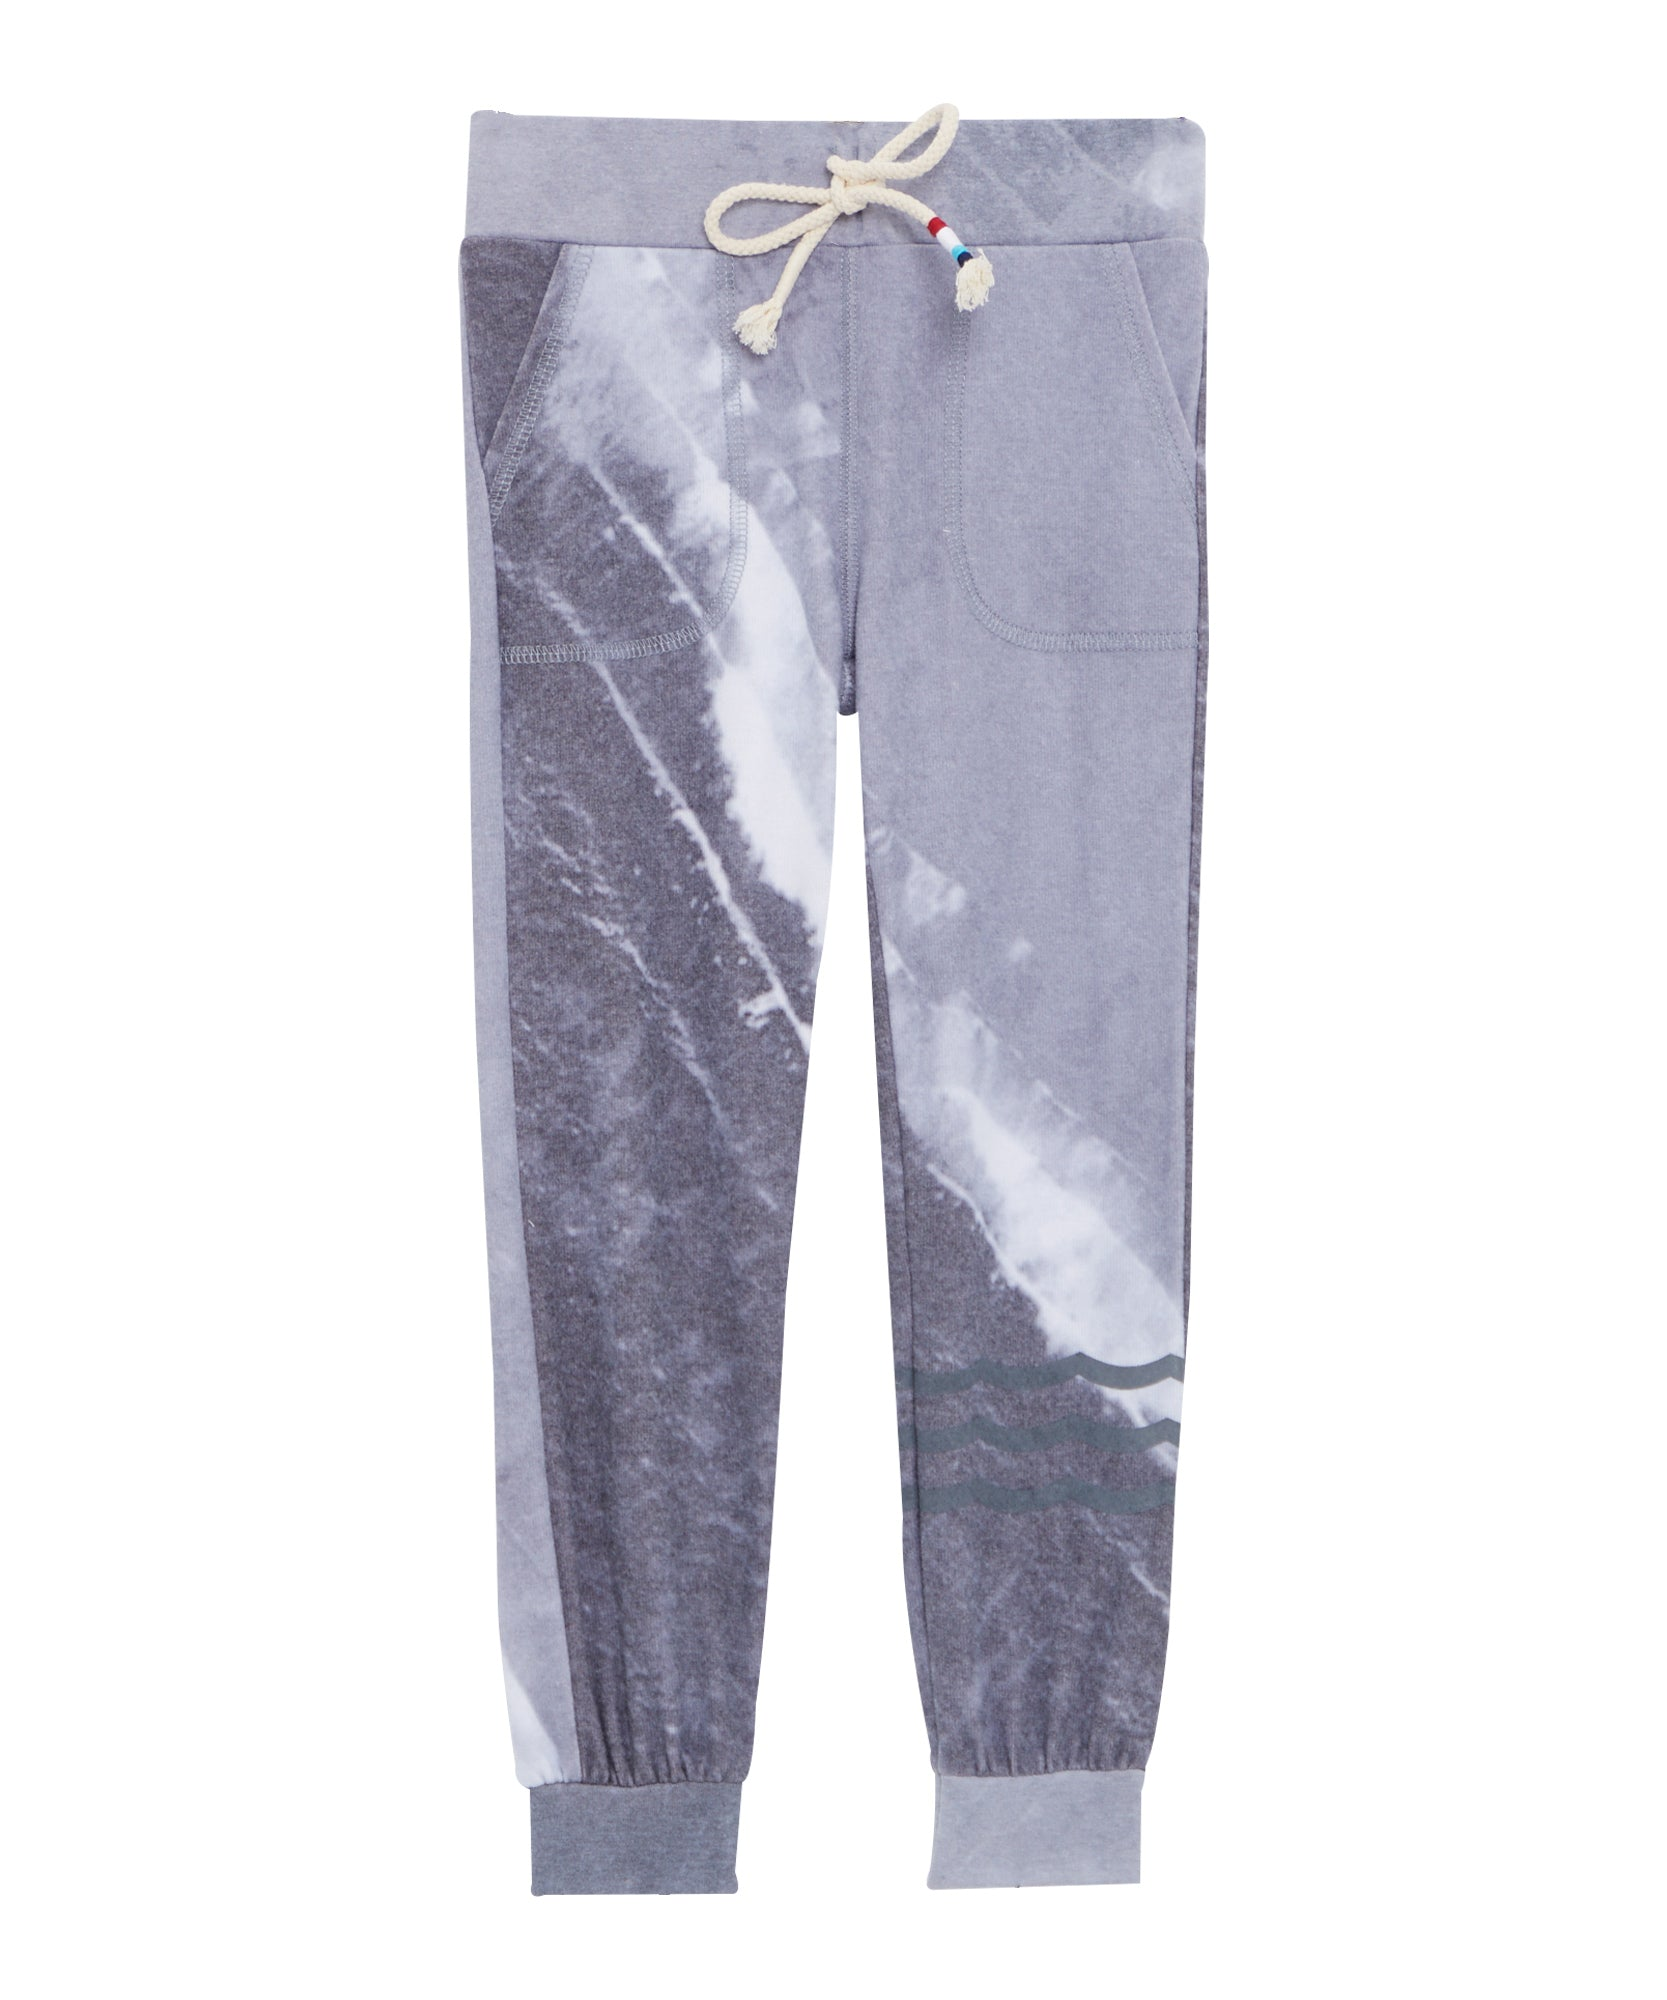 Coastline Sweatpants